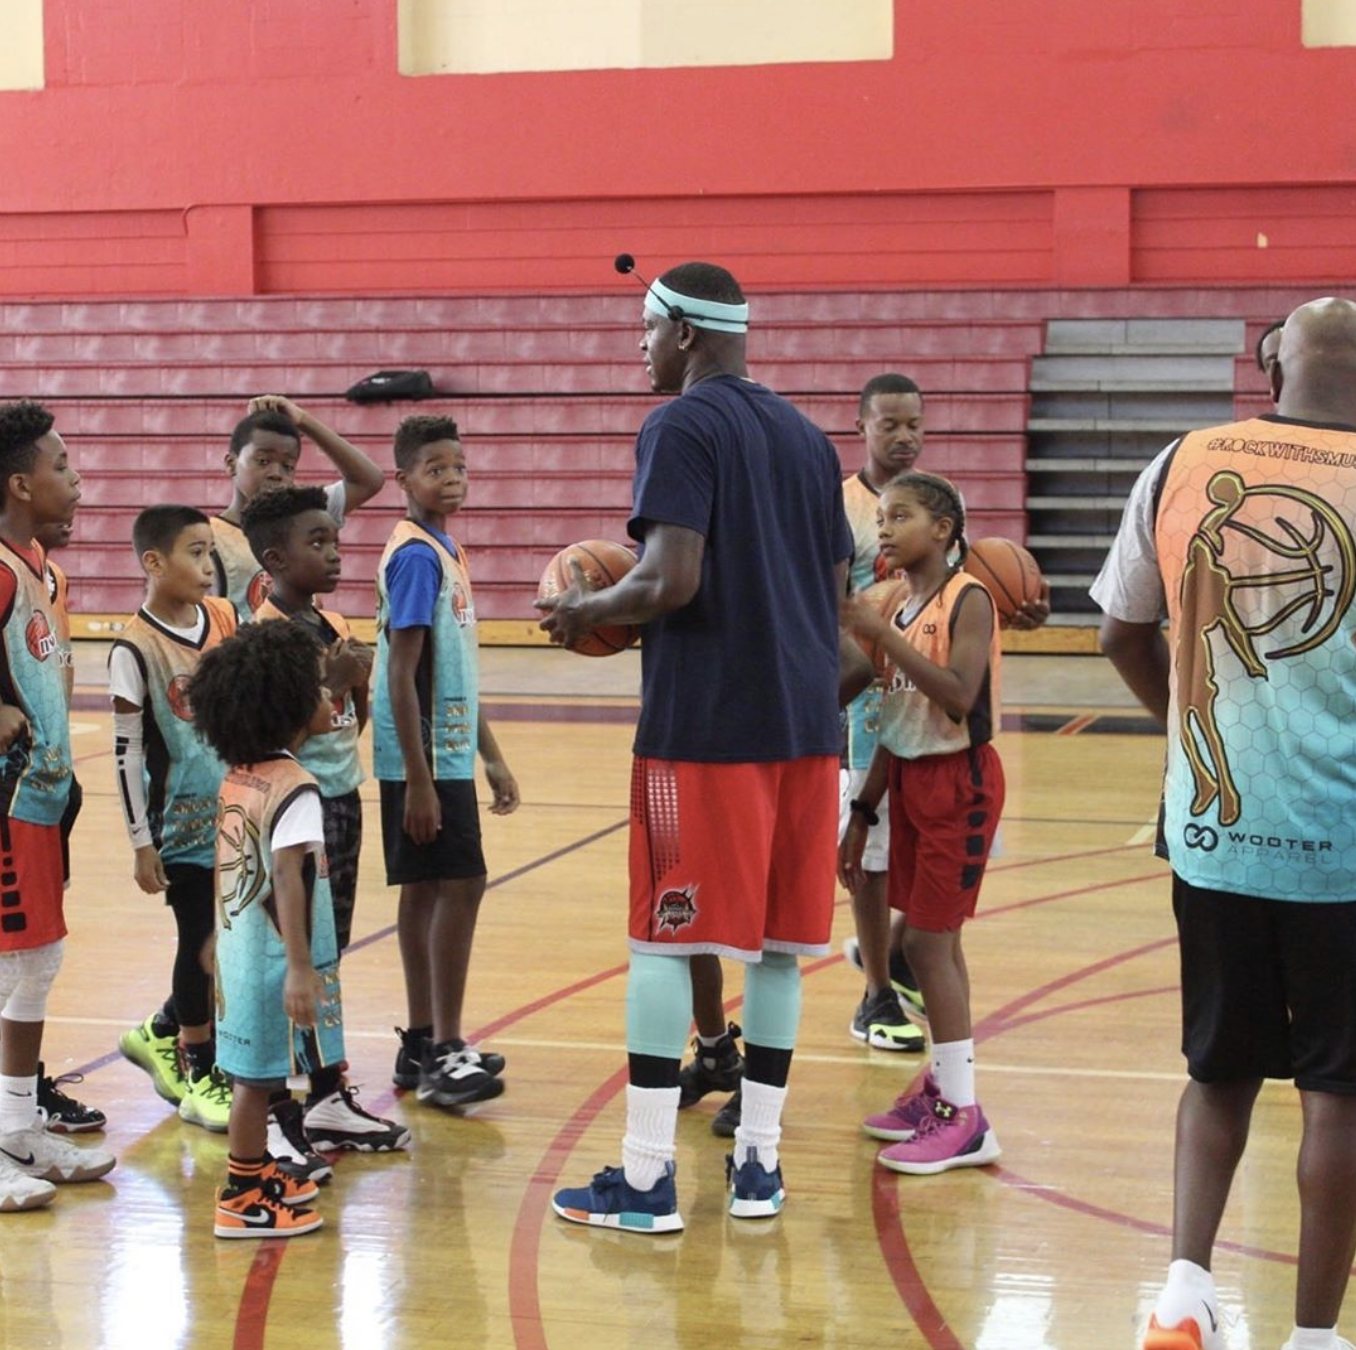 The Big Give Back: When former NBA guard Smush Parker conducted his free basketball clinics in Cleveland, Atlanta, Houston, New York, Mississippi, Los Angeles, and Florida, young basketball players sported customized Smush Parker Elite jerseys by Wooter Apparel.